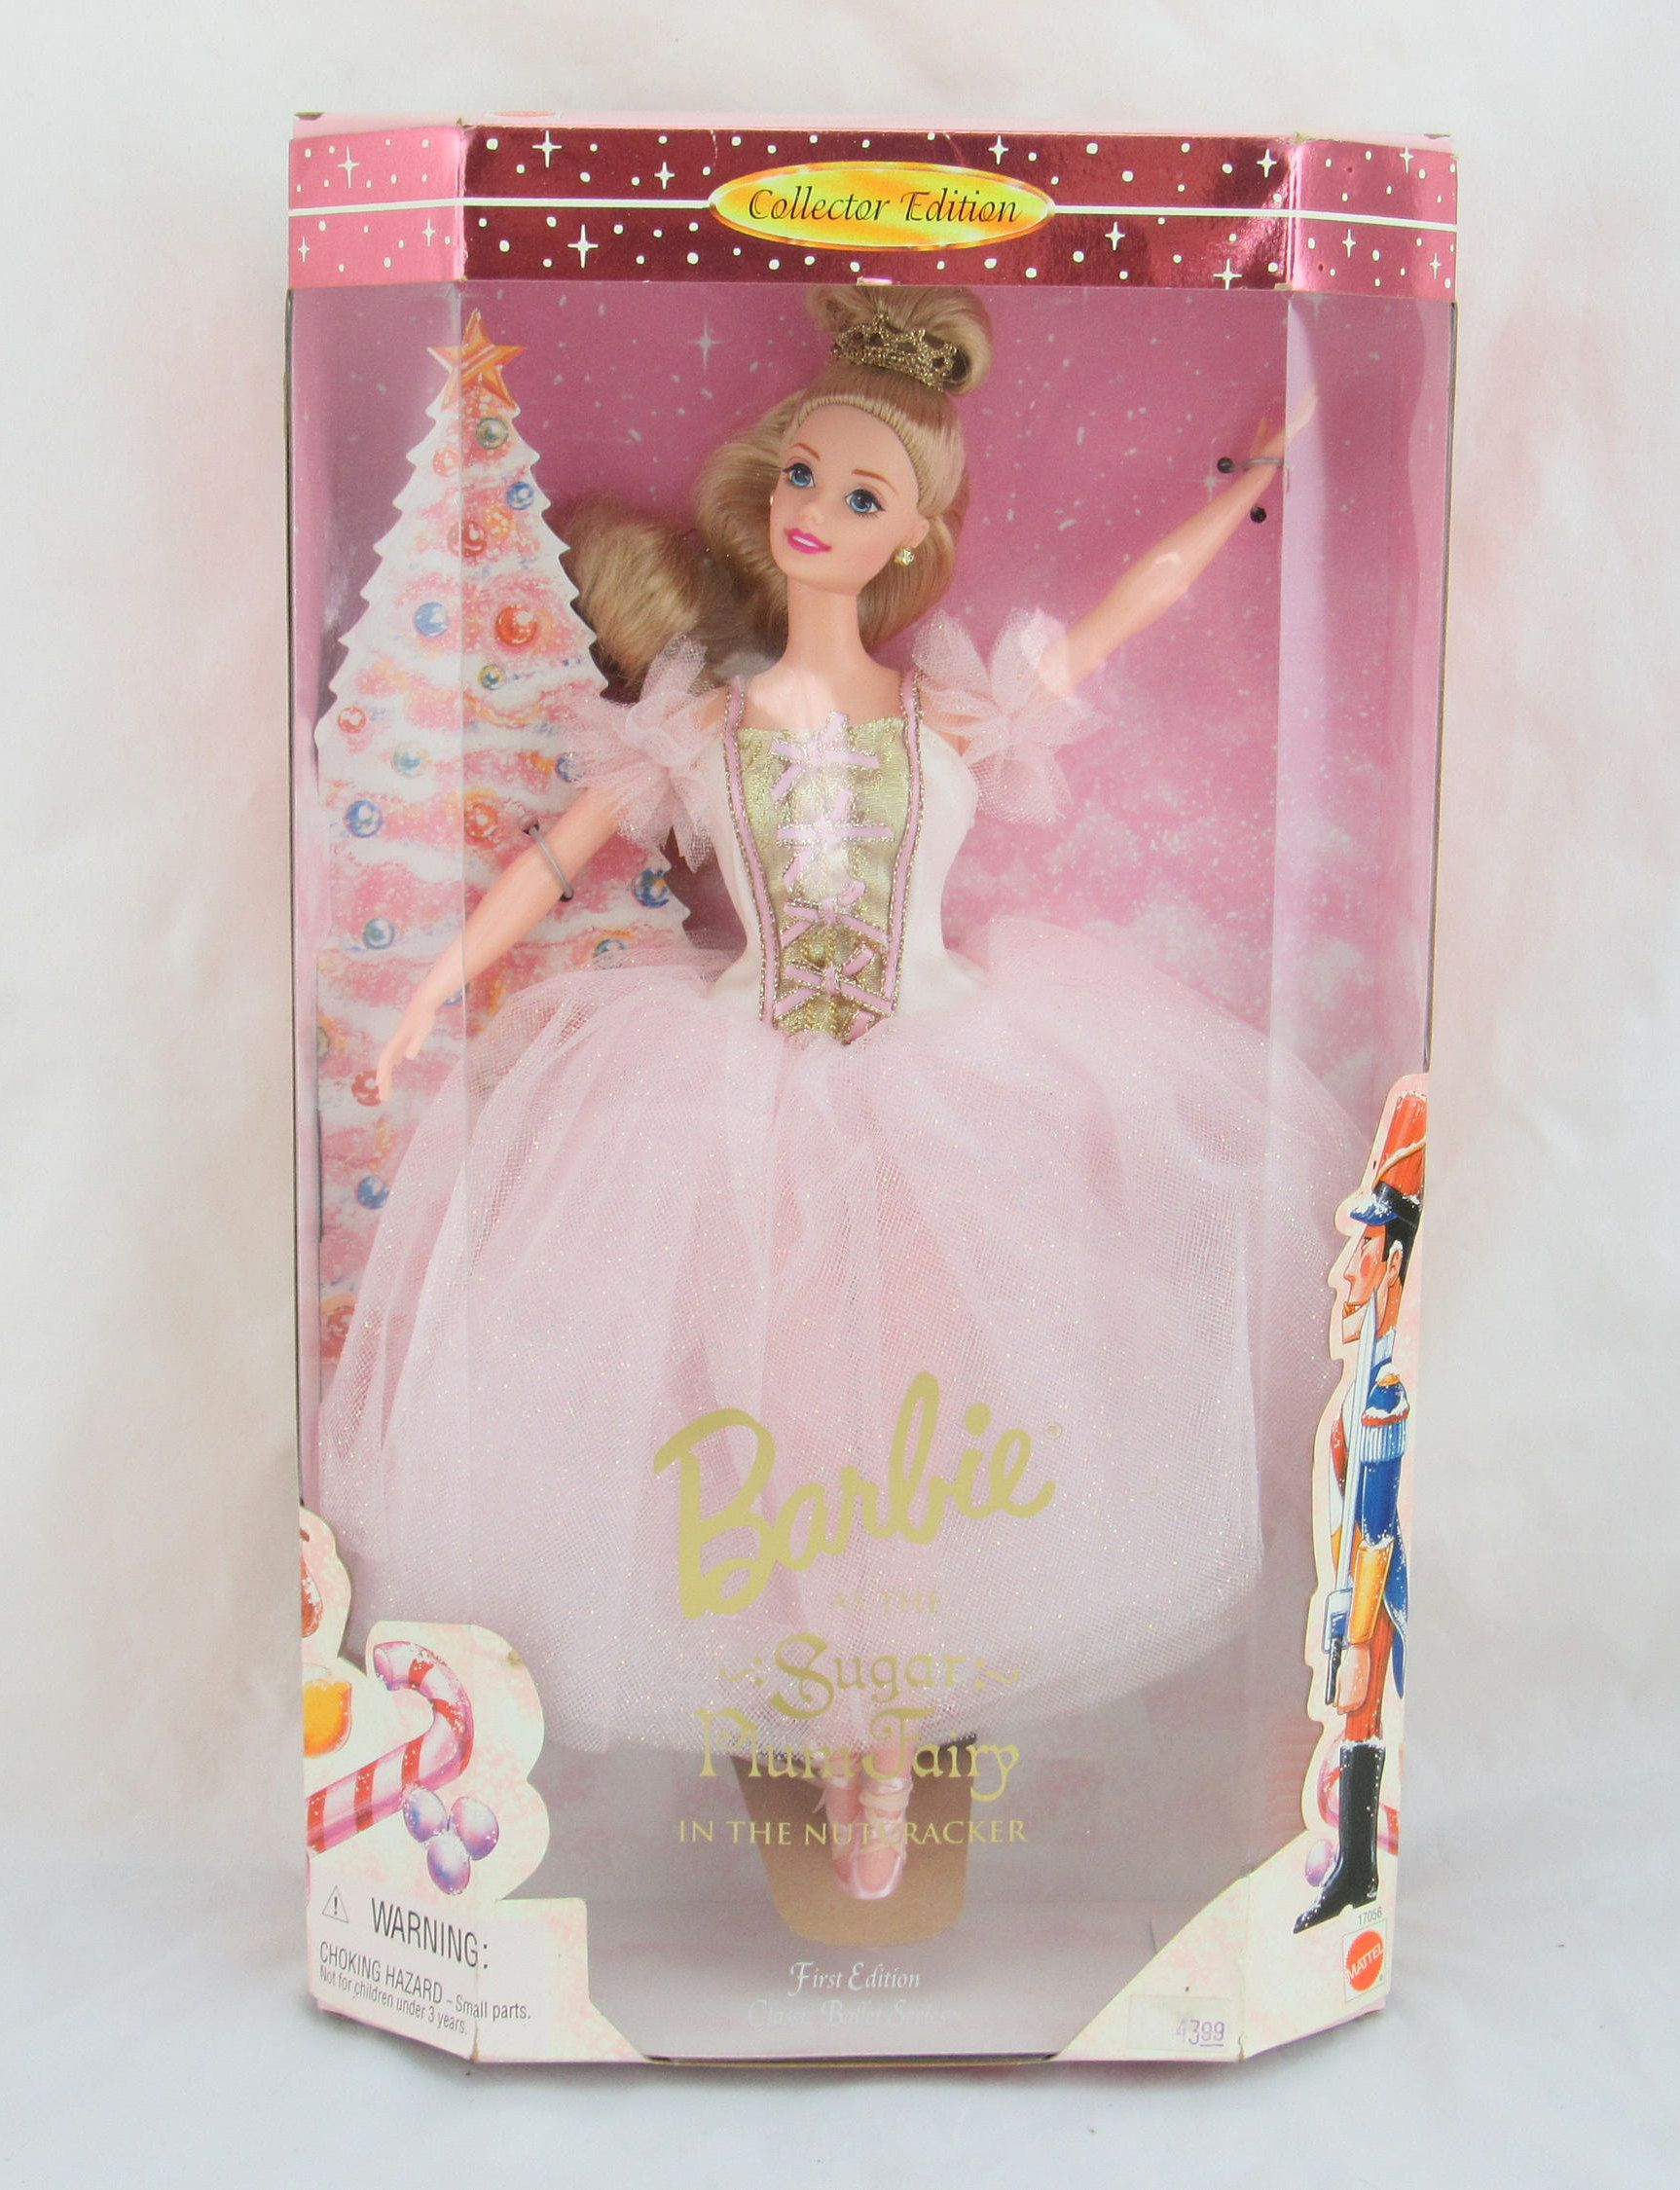 Barbie as the Sugar Plum Fairy in the Nutcracker Classic Ballet